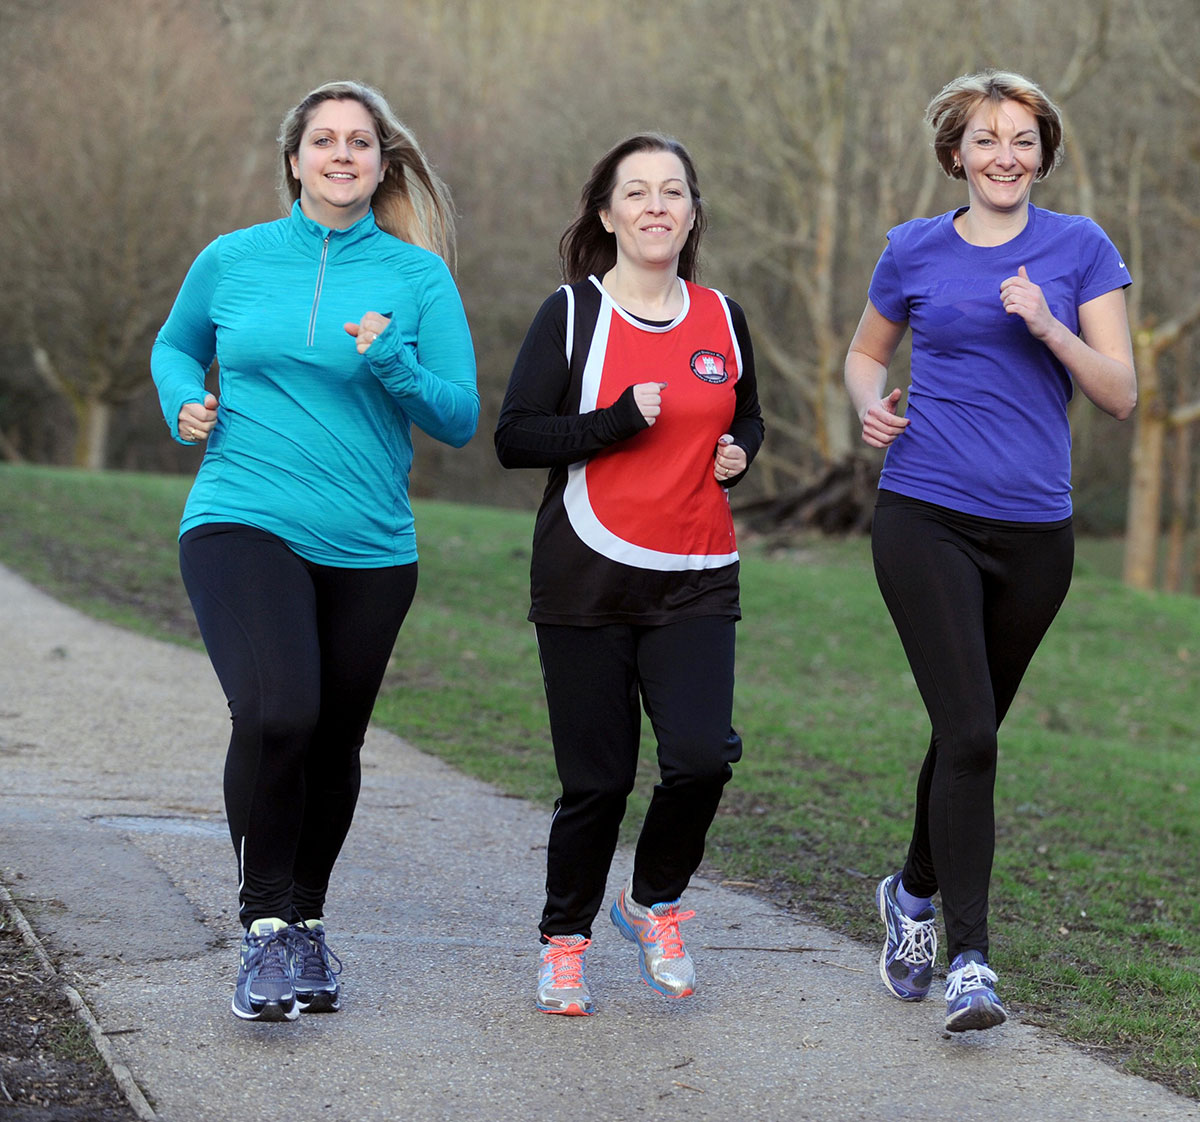 READY TO RUN: Warming up for the Mic Morris 10k in Pontypool are L-R Anita Mackertich-Sellick Samantha Hawksworth